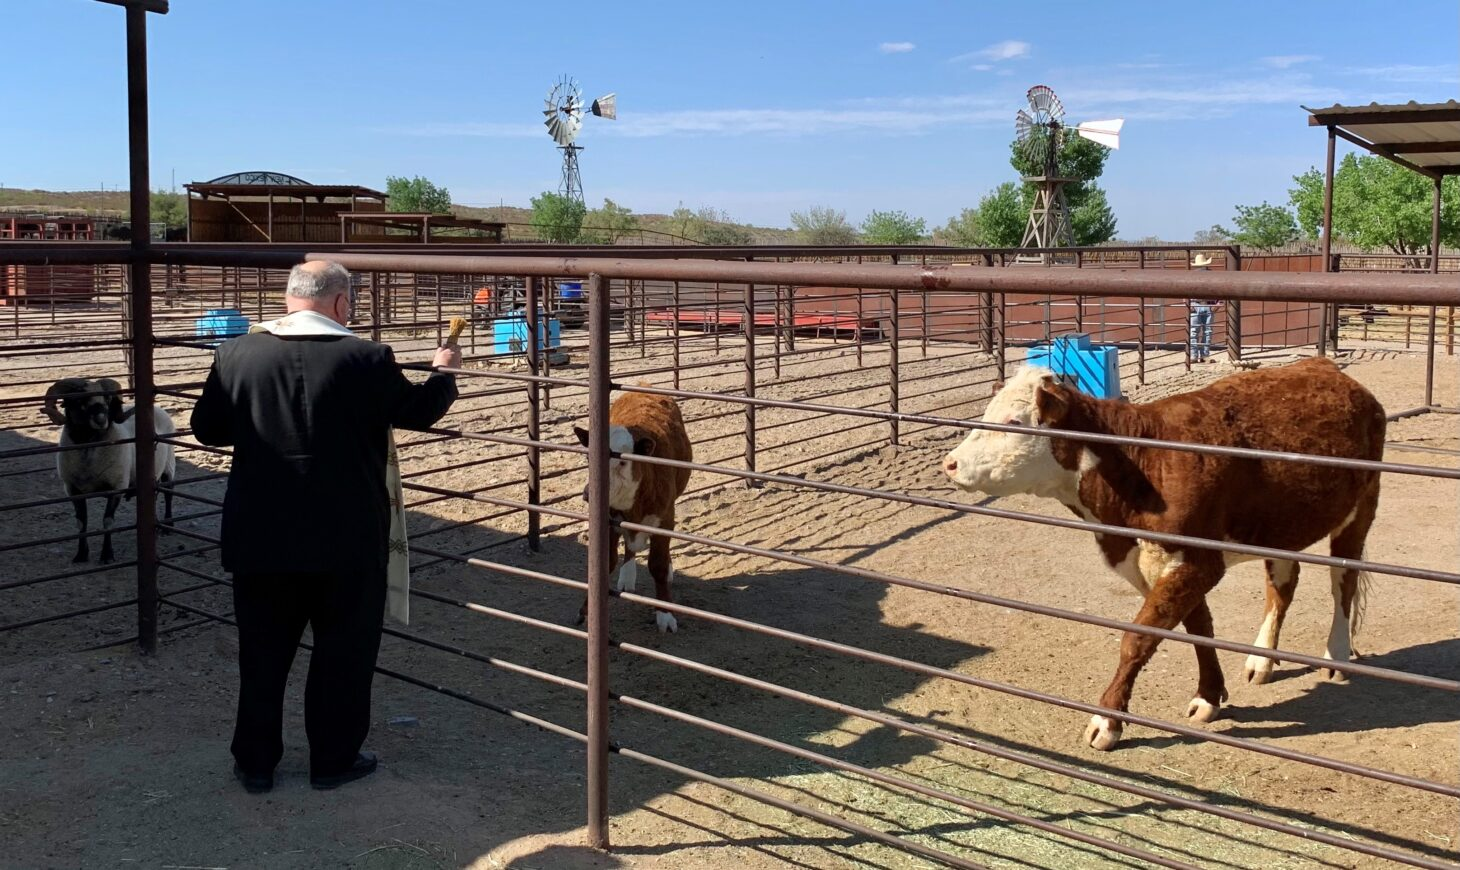 Bishop Peter Baldacchino of the Diocese of Las Cruces blessing some of the livestock at the New Mexico Farm & Ranch Heritage Museum on May 14.